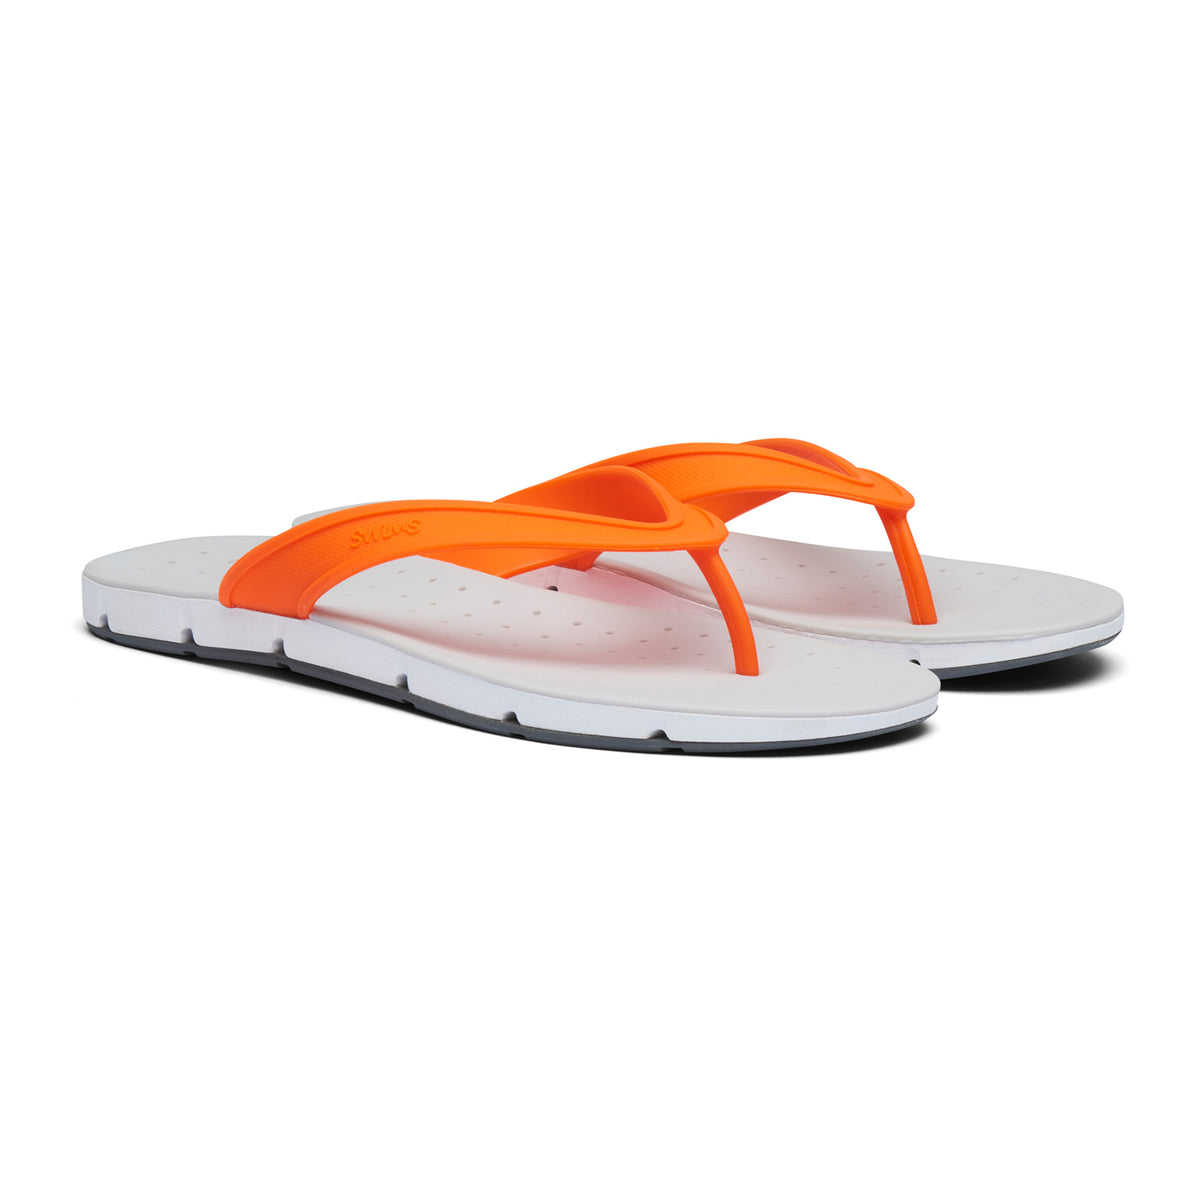 Breeze Thong Sandal - background::white,variant::Orange/White/Gray